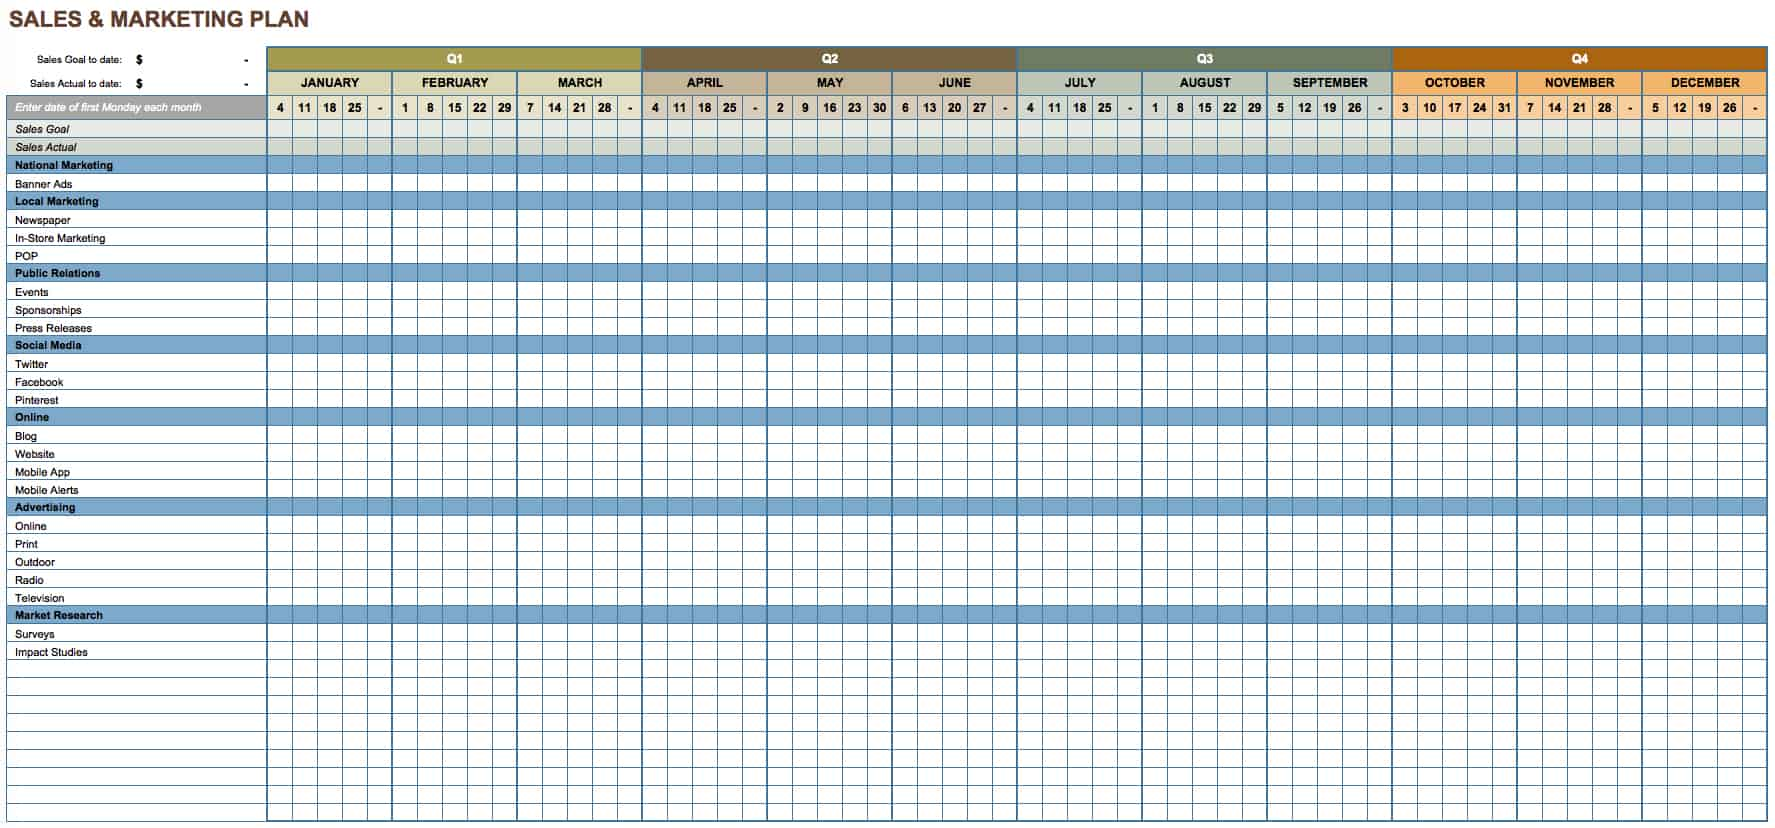 Free Marketing Plan Templates For Excel Smartsheet - Marketing plan timeline template excel